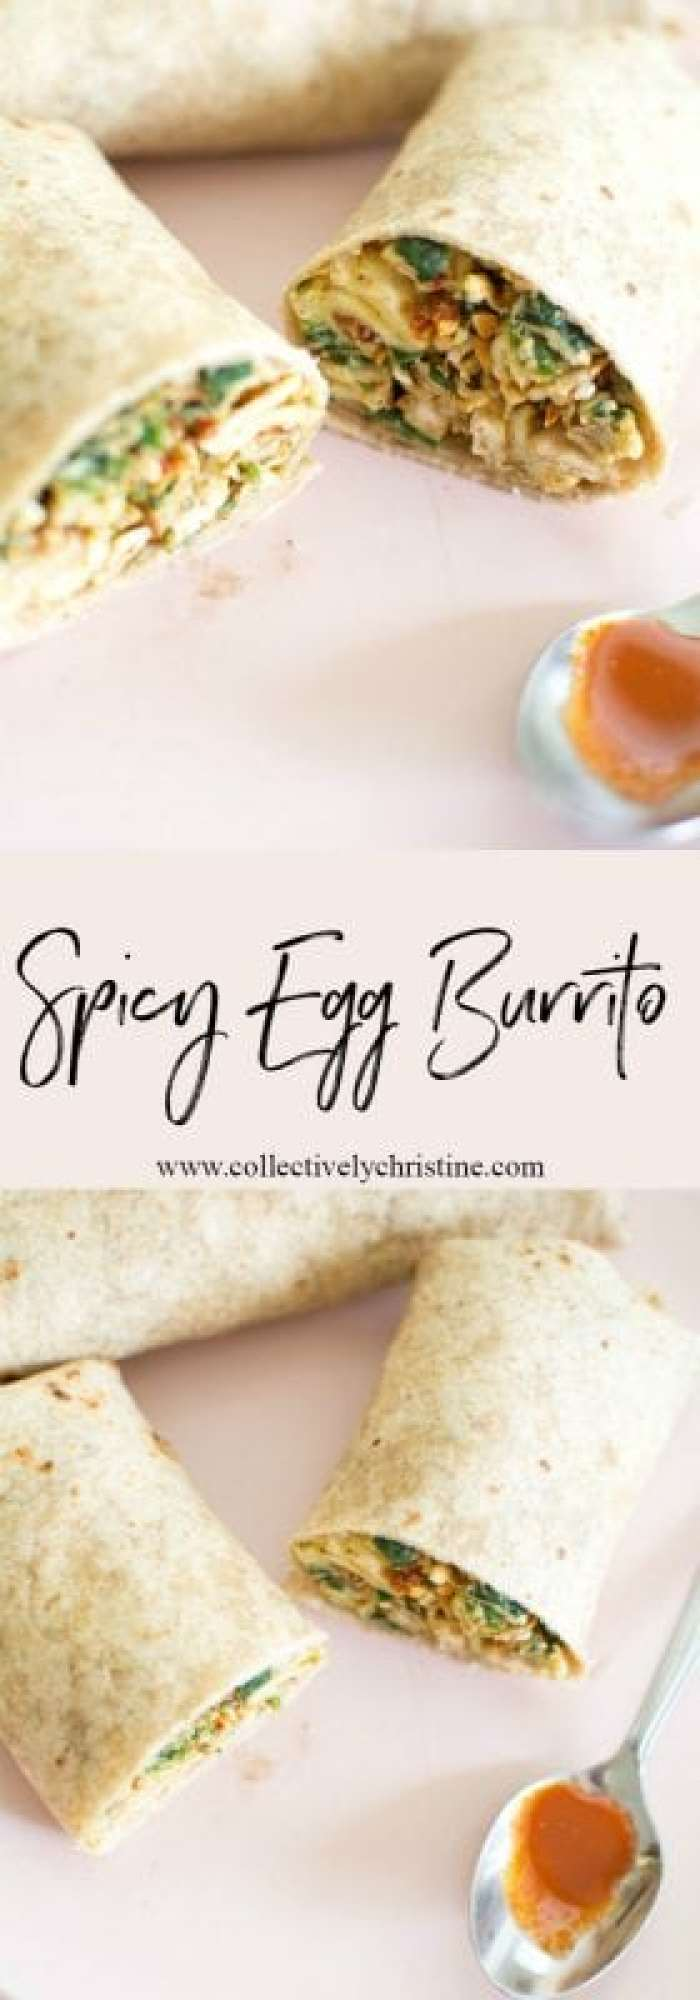 Spicy egg burrito made with @Eggland's Best eggs! Great for meal prep and making ahead to save time in the morning.